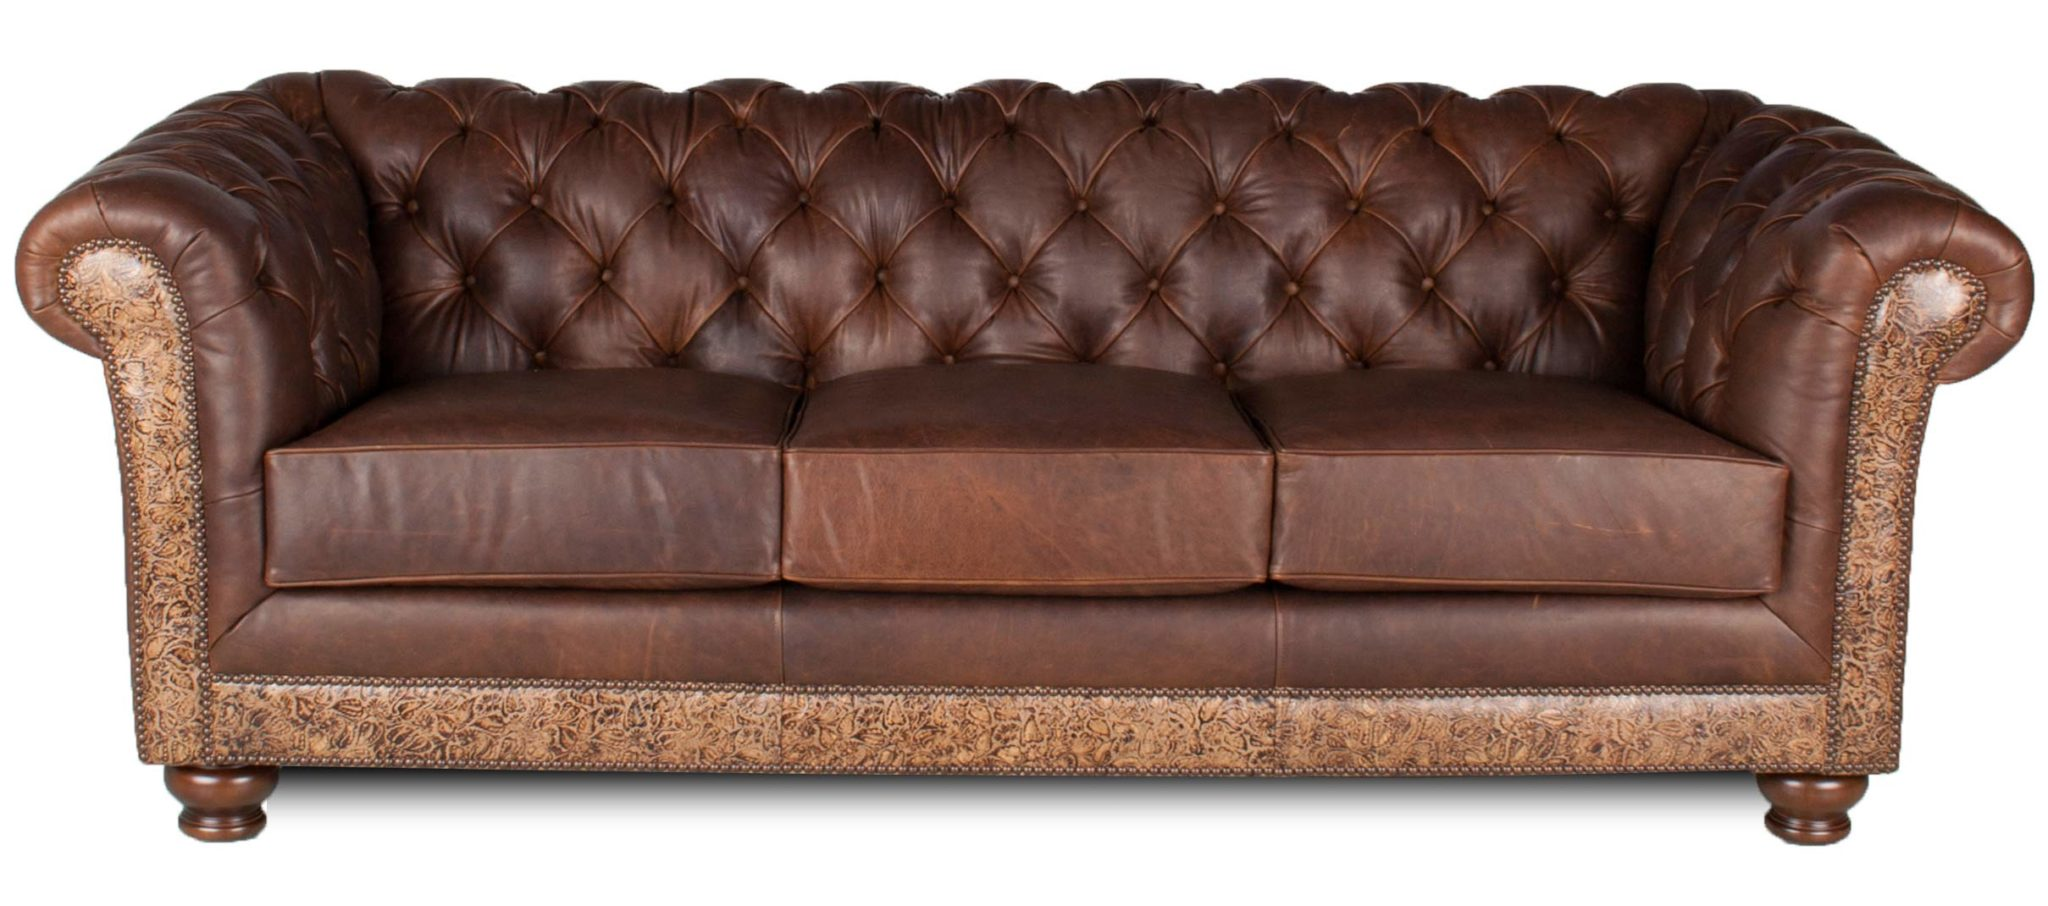 Executive leather furniture for Leather furniture